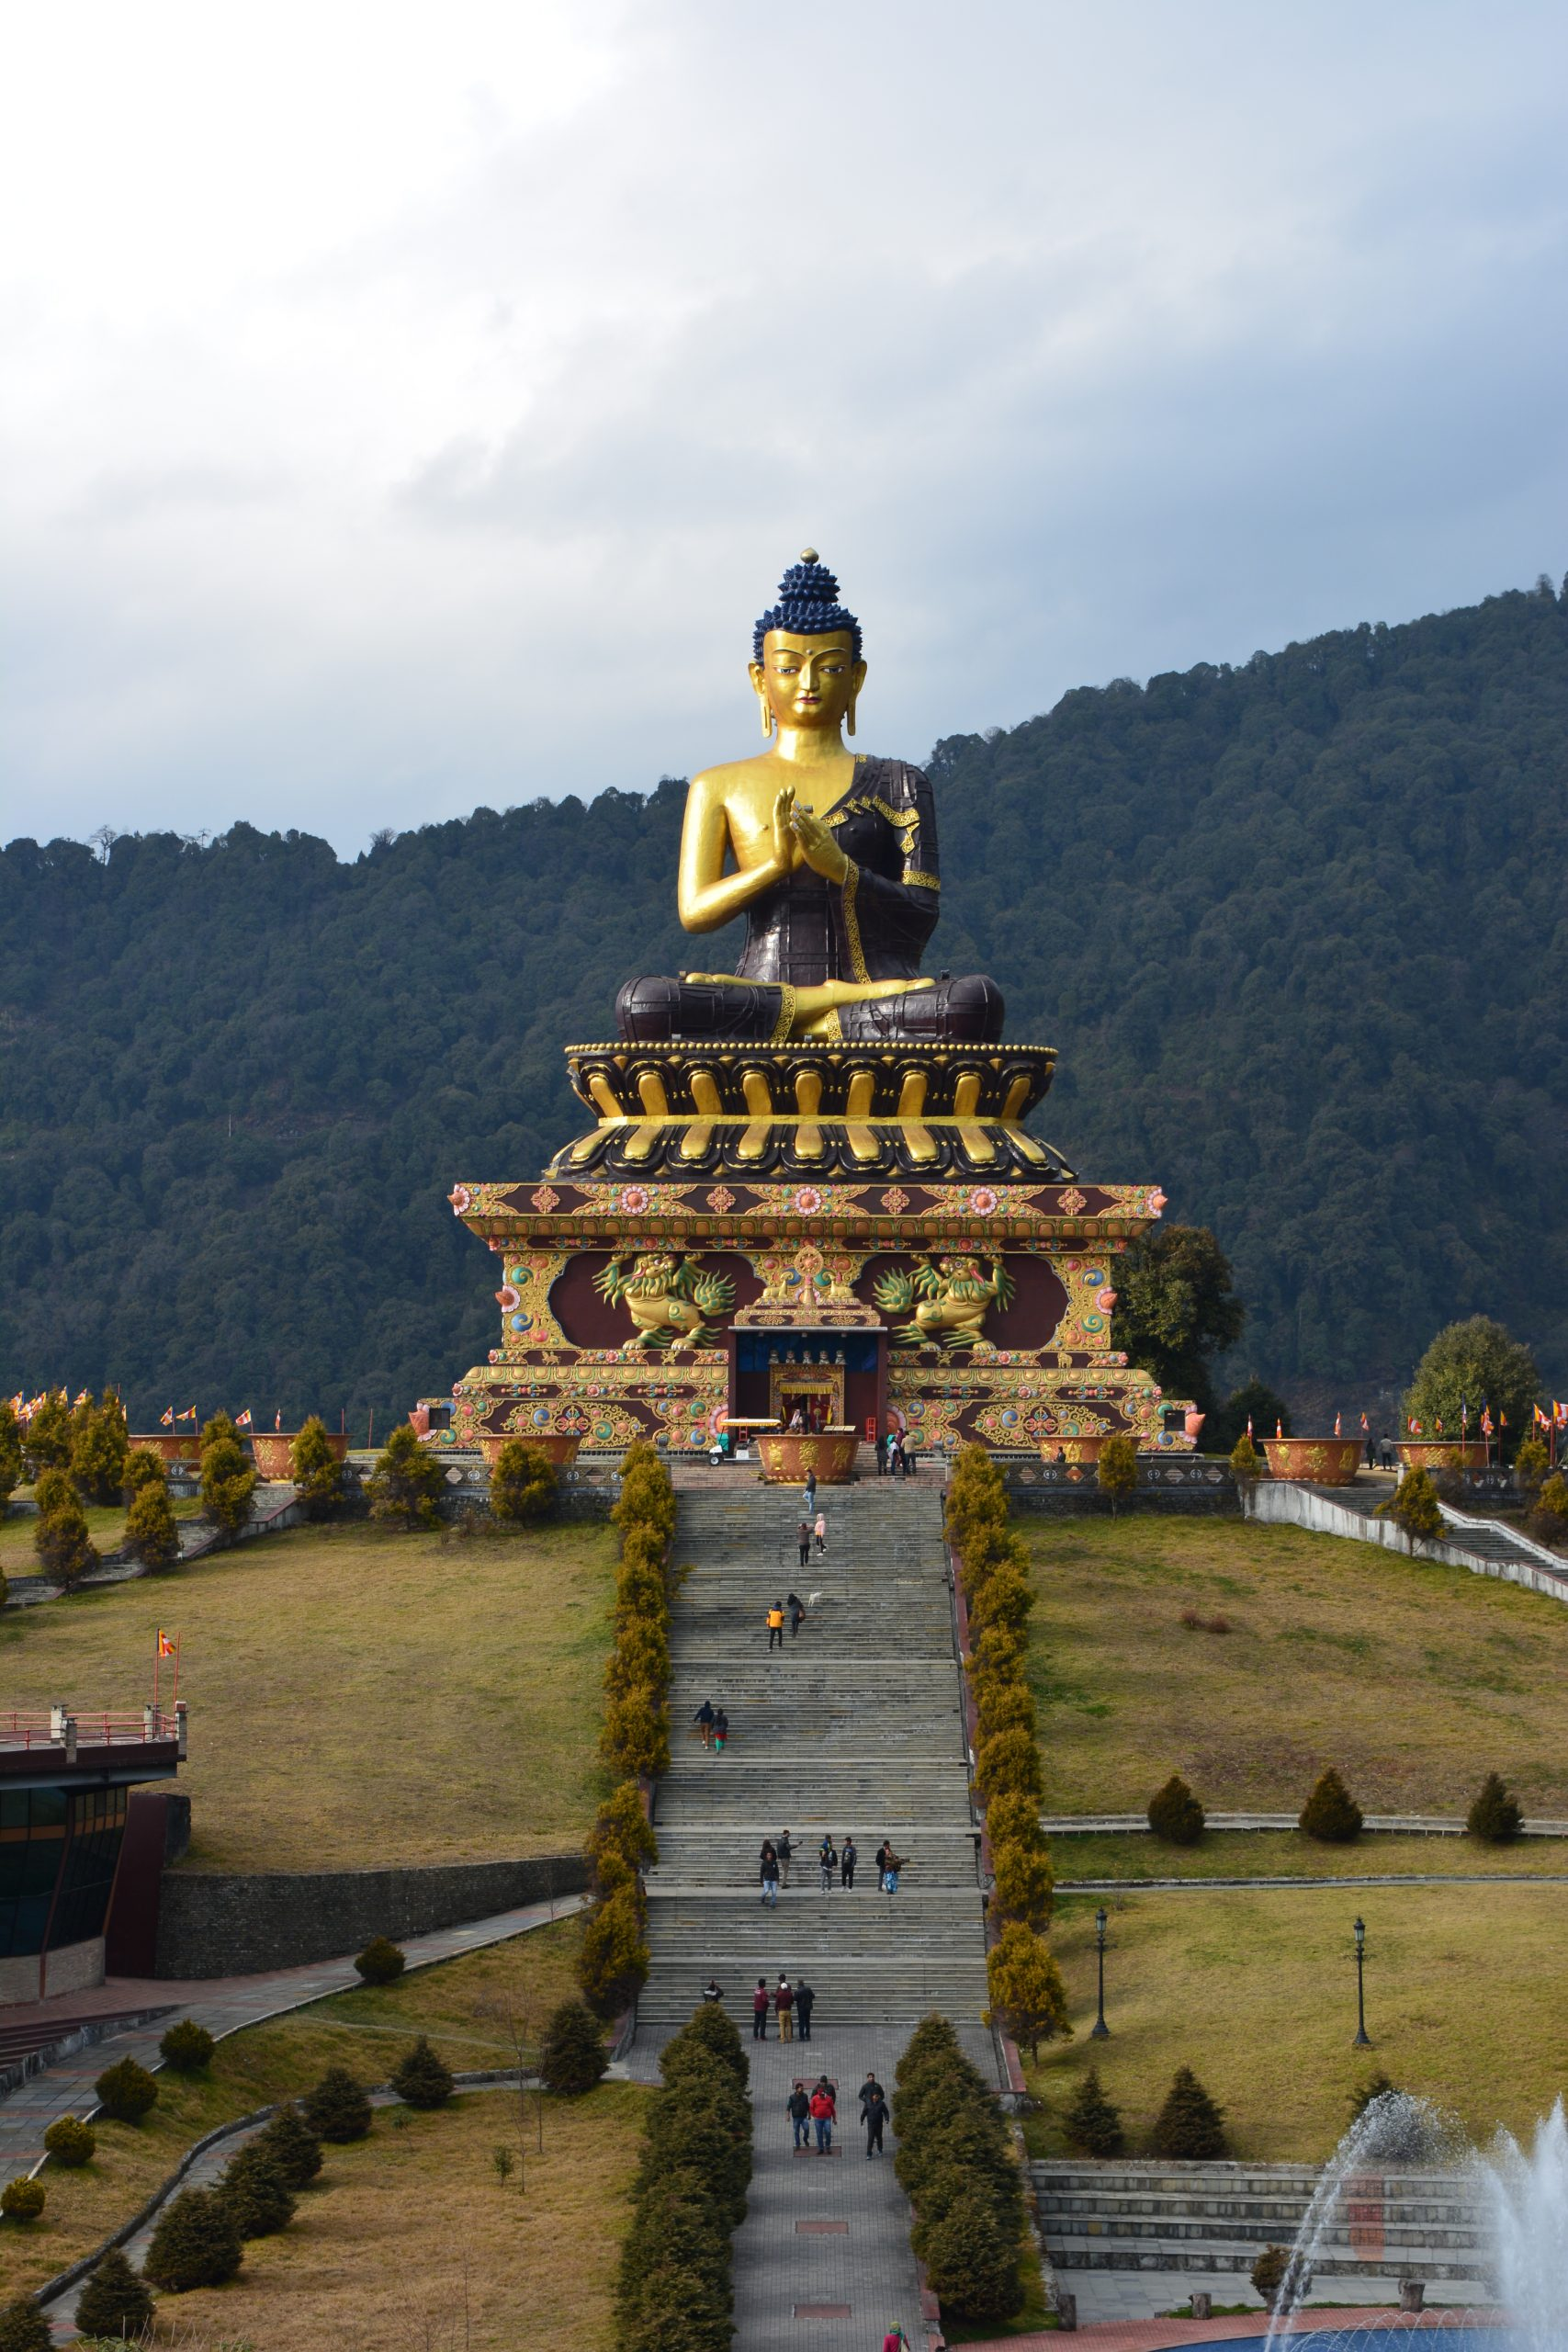 In extended old silk route tour Buddha Park can be cover